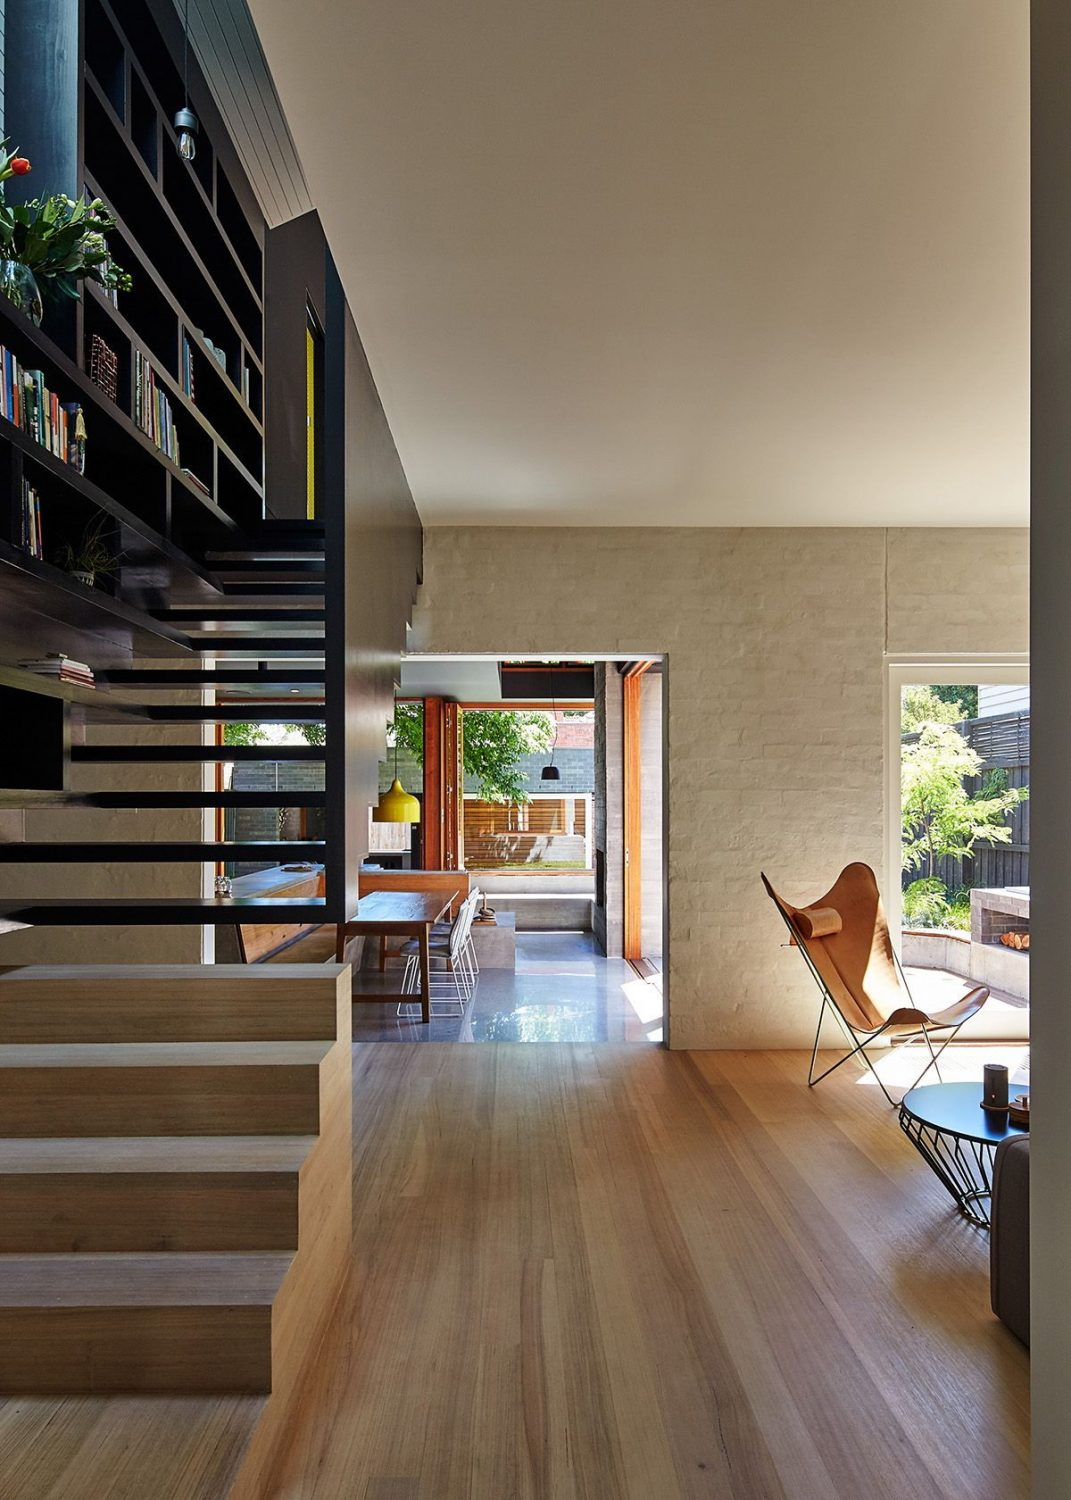 Local House by Studio Bright